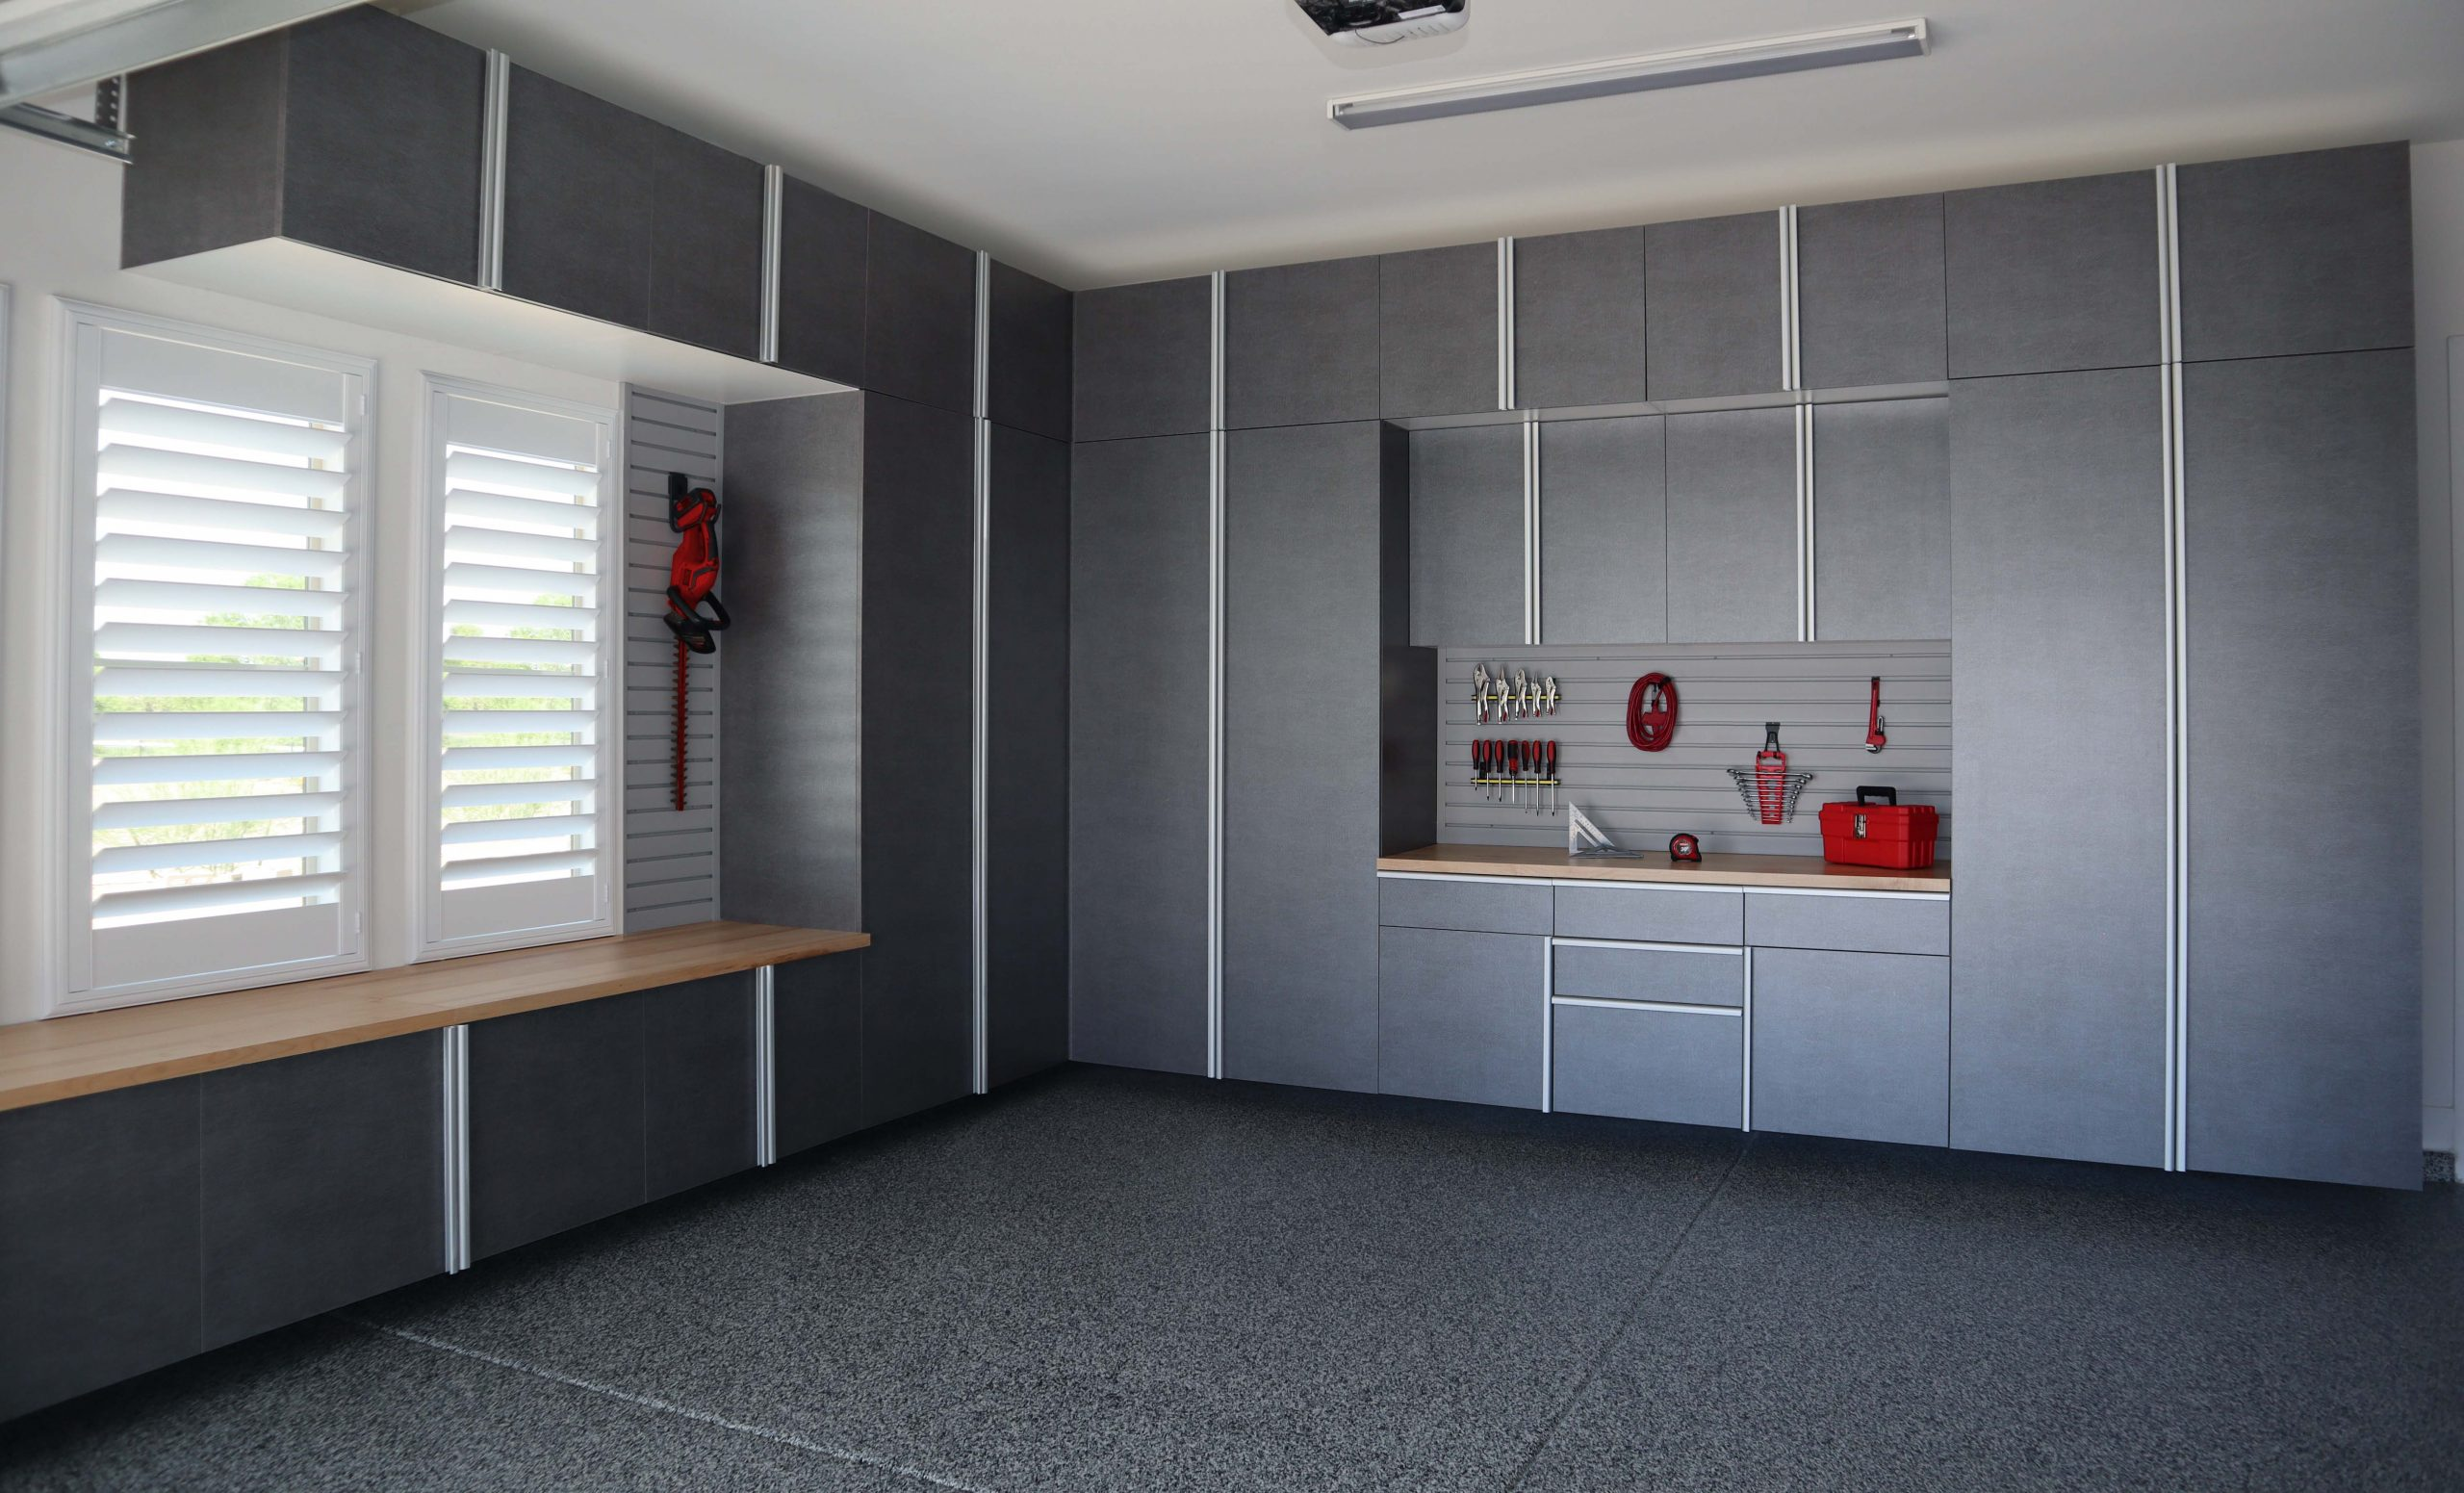 Pewter Cabinets with Butcher Block Countertop and Grey Slatwall Angle